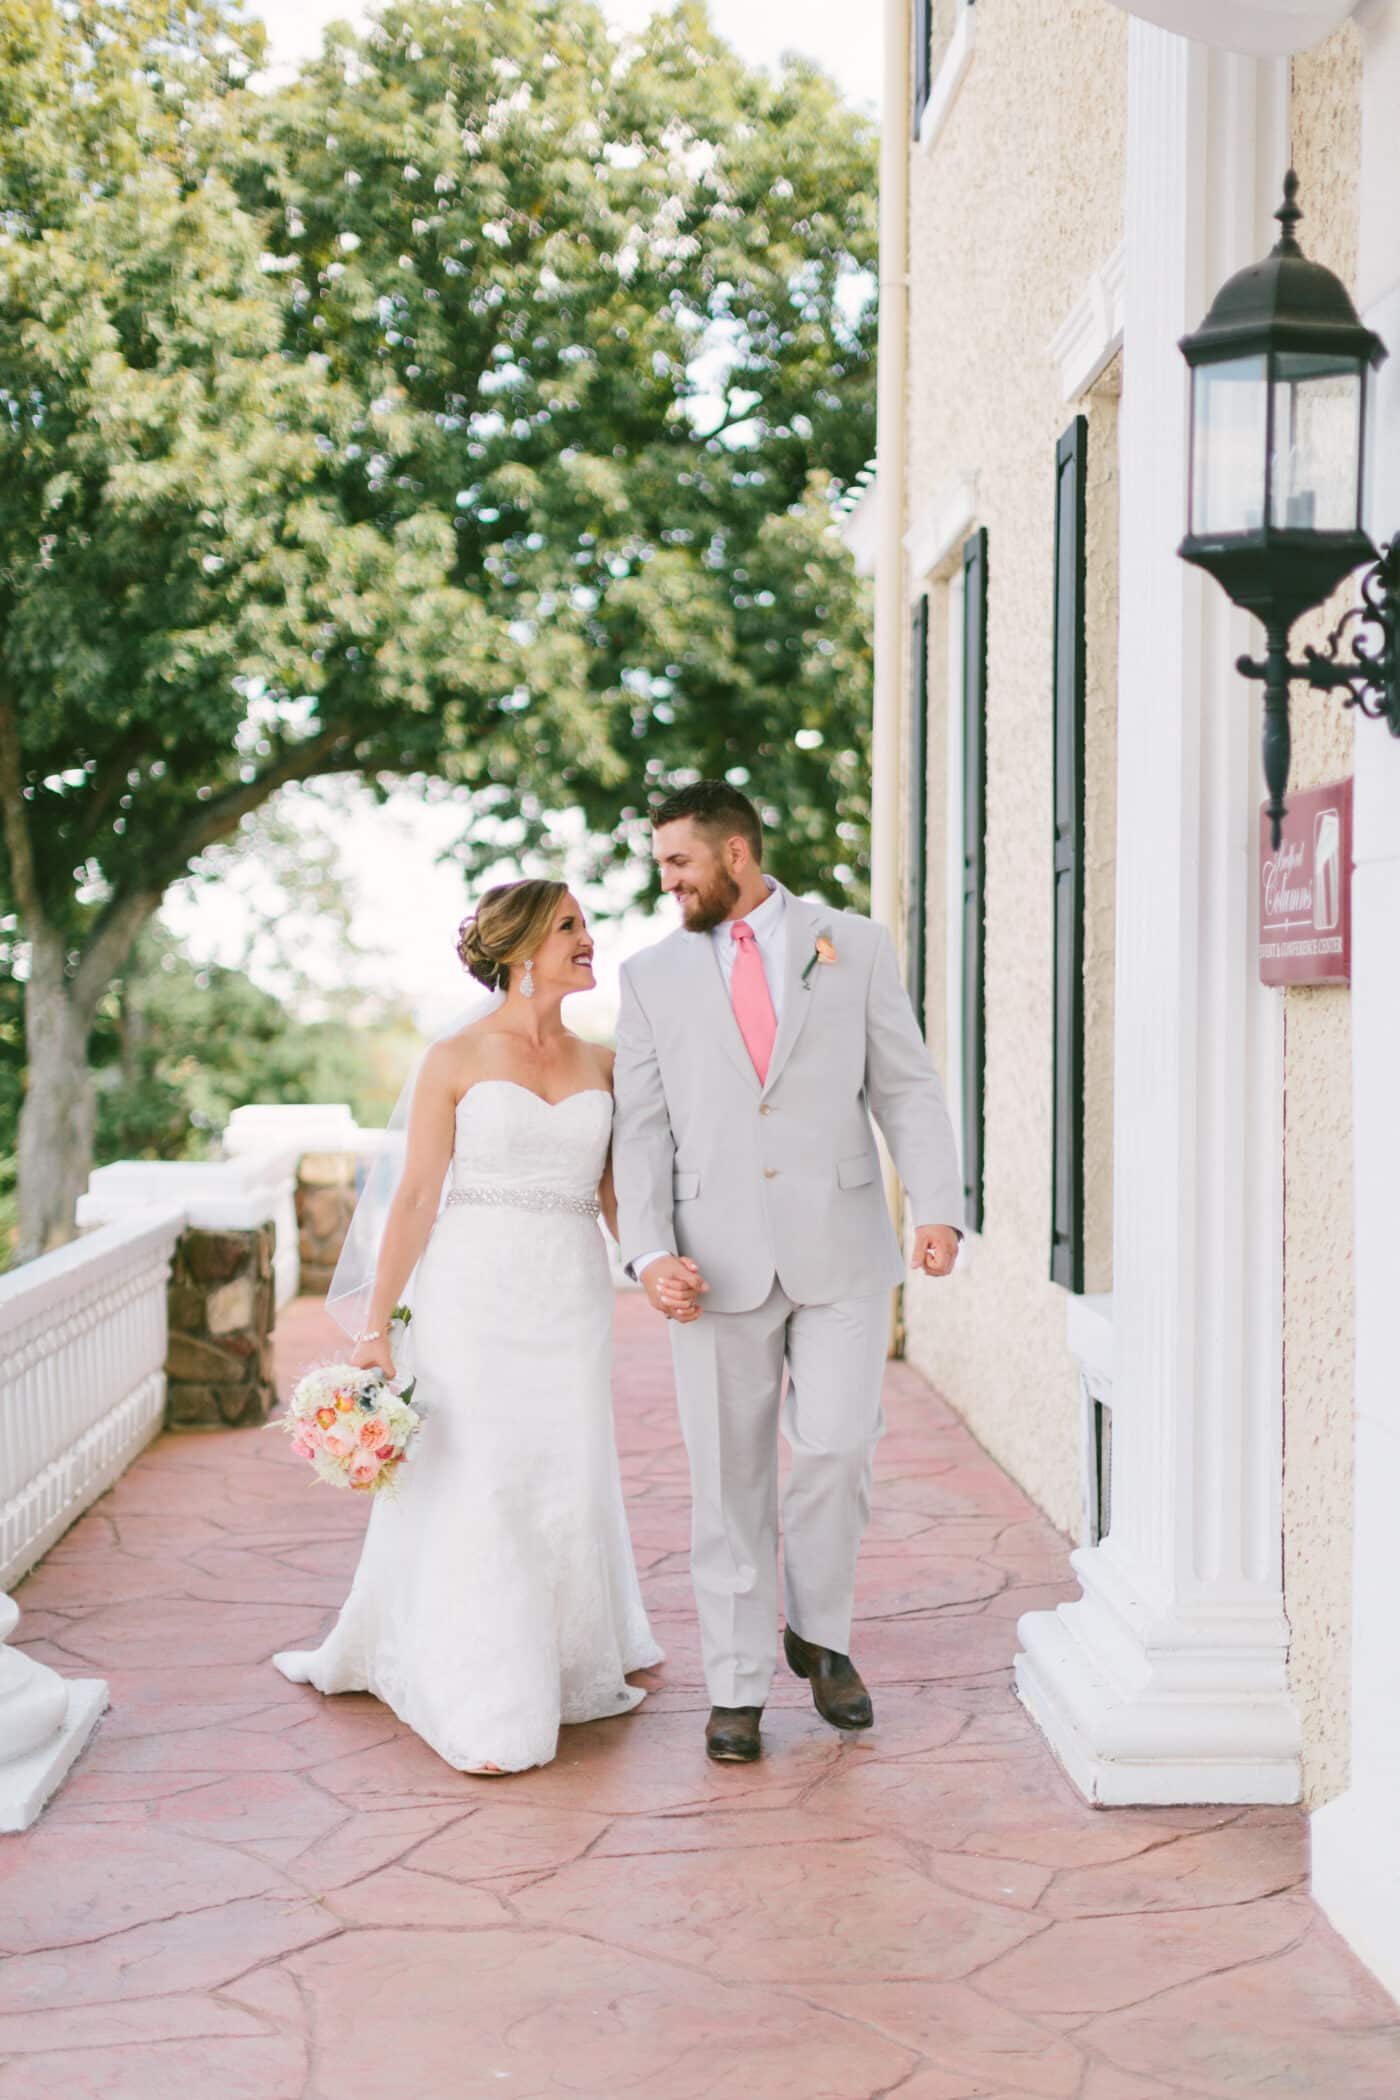 Selecting Your Virginia Wedding Venue | Entwined Events | Venue: The Bedford Columns in Bedford, VA | Photo Credit: Nikki Metcalf Photography